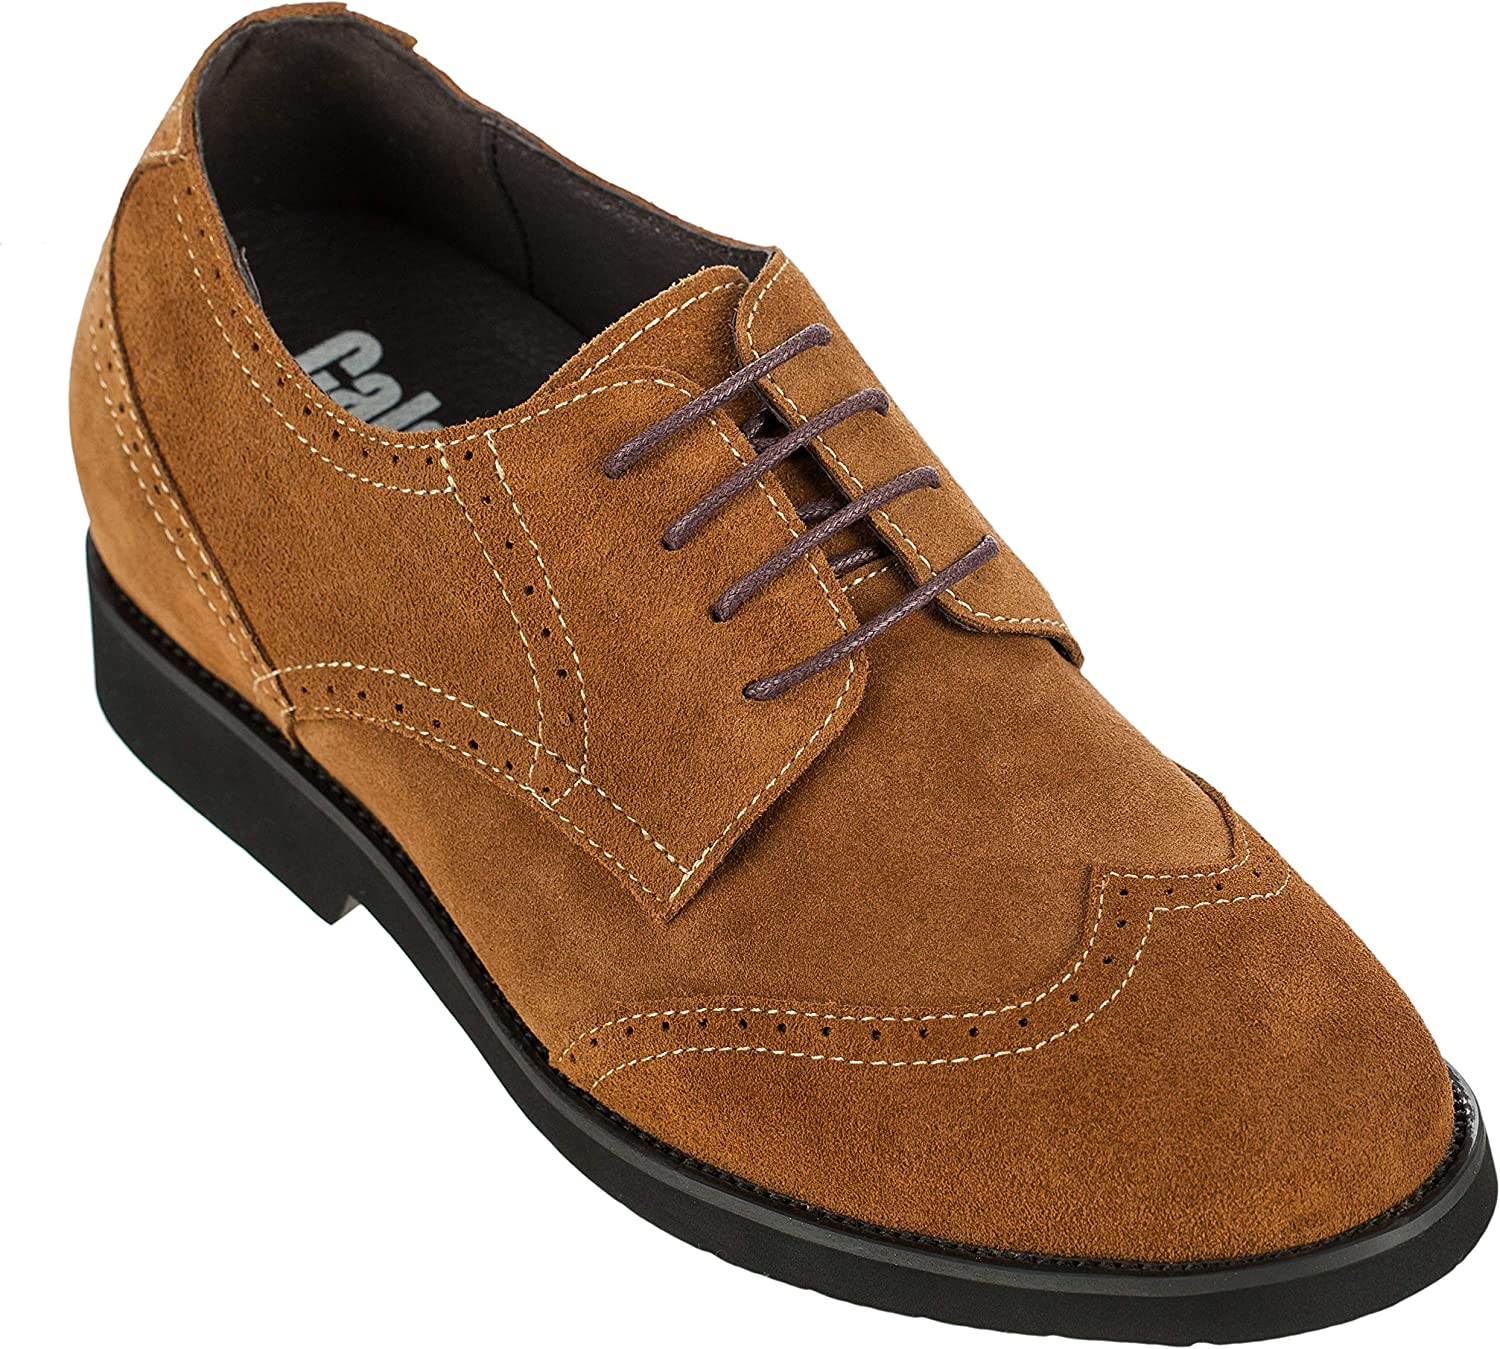 Calden - K221212-2.6 Inches Taller - Height Increasing Elevator shoes (Brown Suede Lace-up)